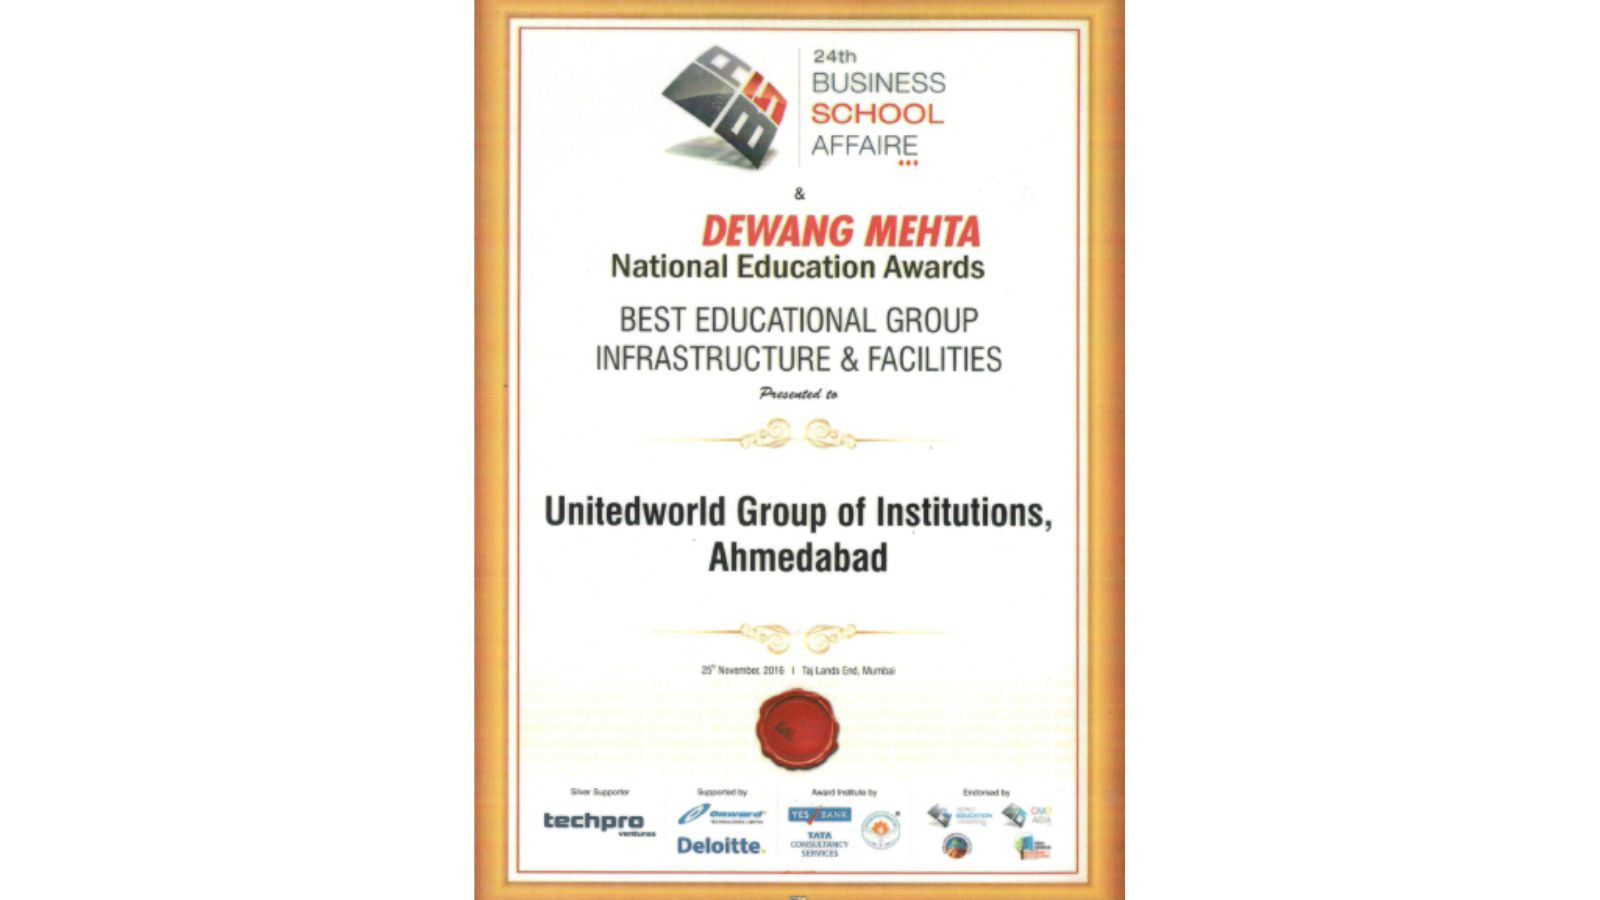 Dewang Mehta National Education Award Image